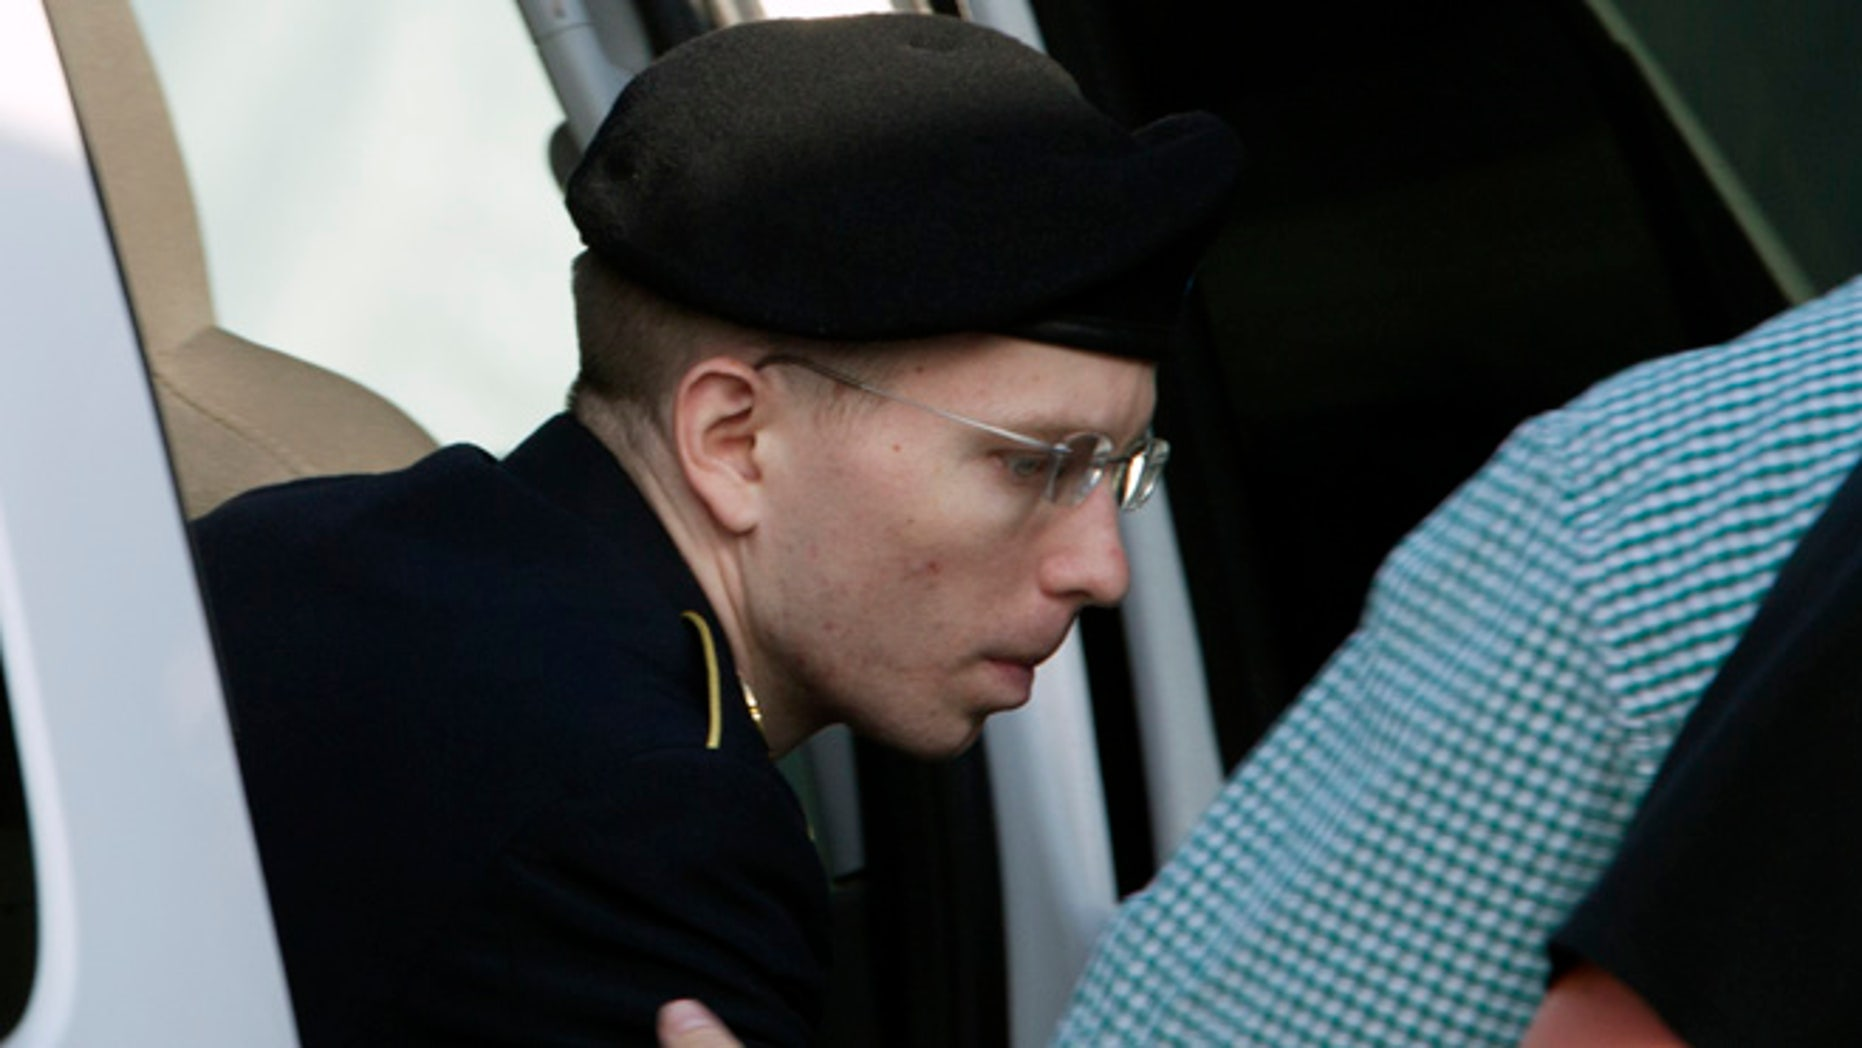 July 8, 2013: Army Pfc. Bradley Manning arrives at the  courthouse in Fort Meade, Md., after the start of the sixth week of his court martial. Manning is charged with indirectly aiding the enemy by sending troves of classified material to WikiLeaks. He faces up to life in prison.